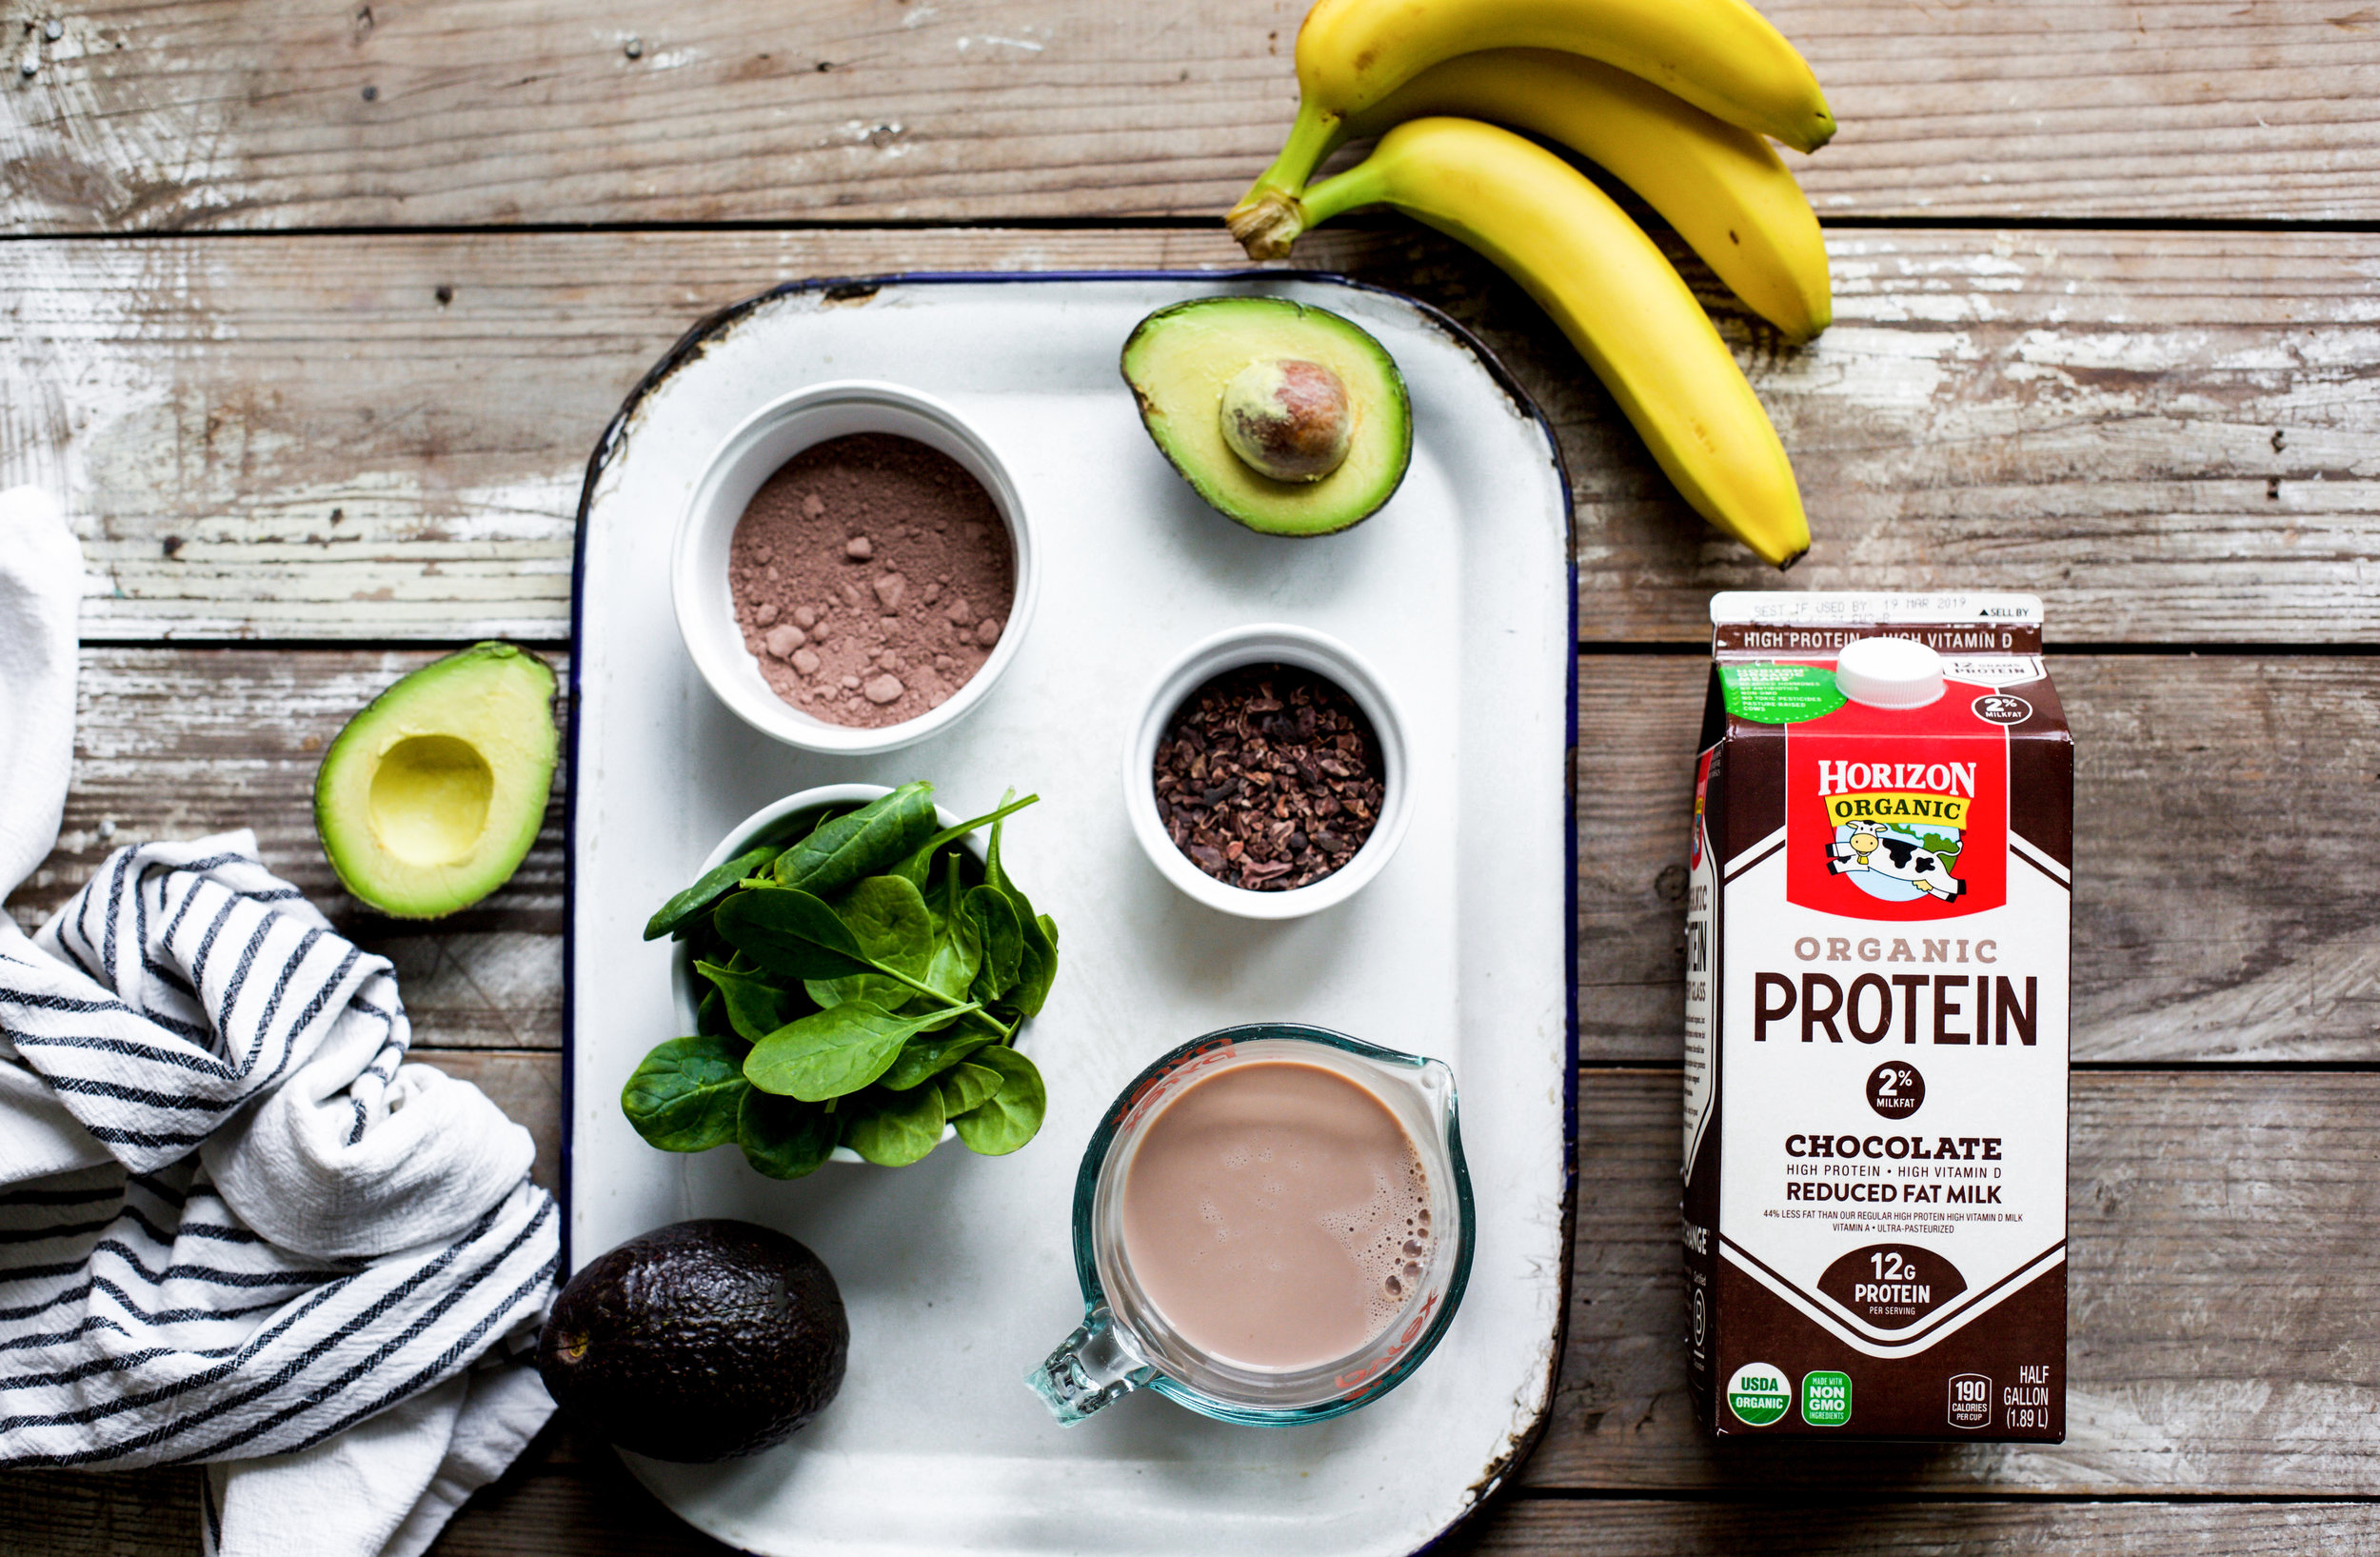 Ingredients to Make a Creamy Avocado Cacao Smoothie